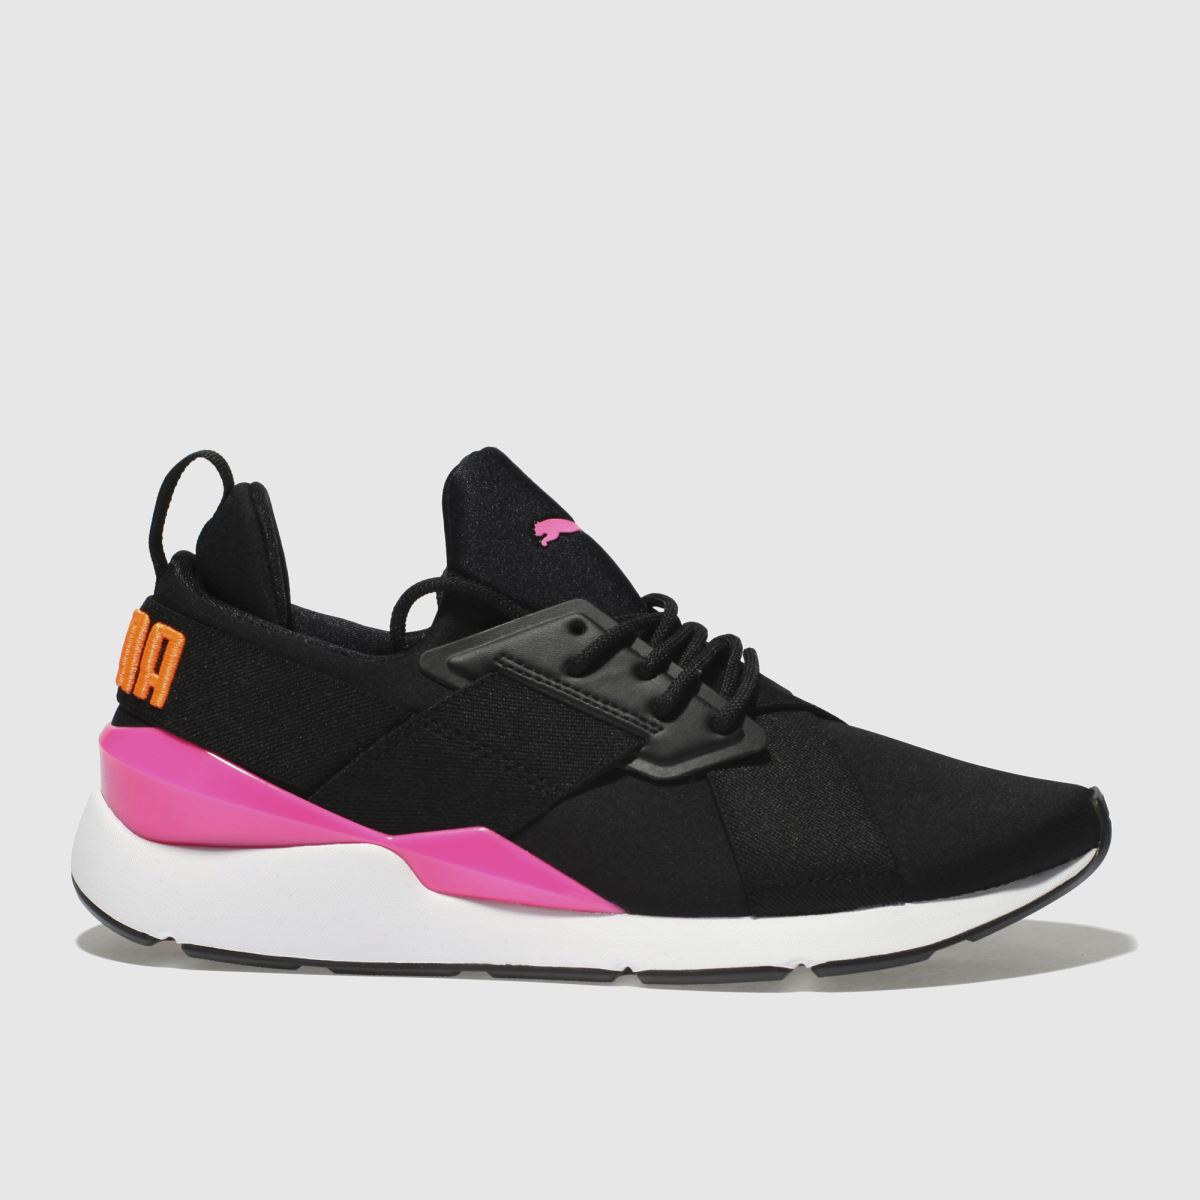 Puma Black & Pink Muse Chase Trainers